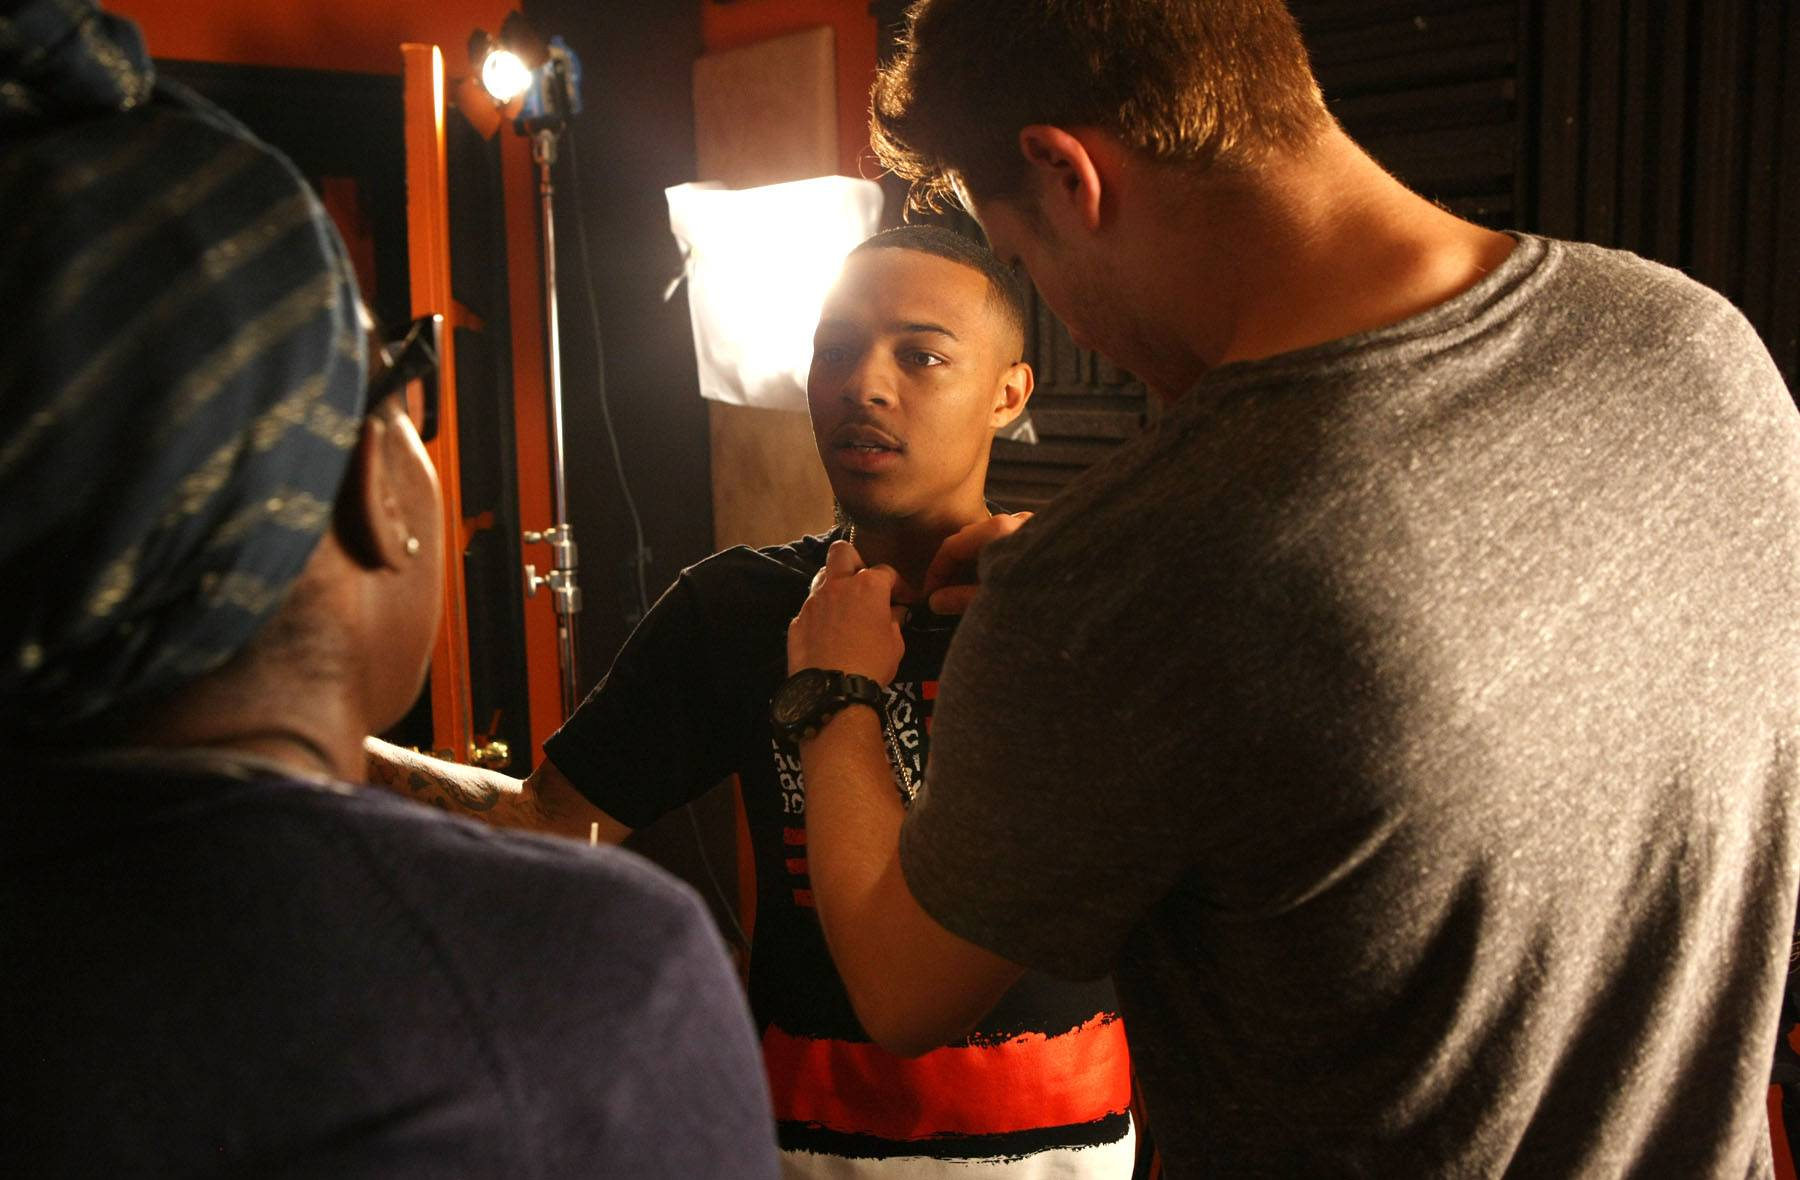 Lights, Camera, Backstage - Host Bow Wow preps backstage. (Photo: Bennett Raglin/BET/Getty Images for BET)